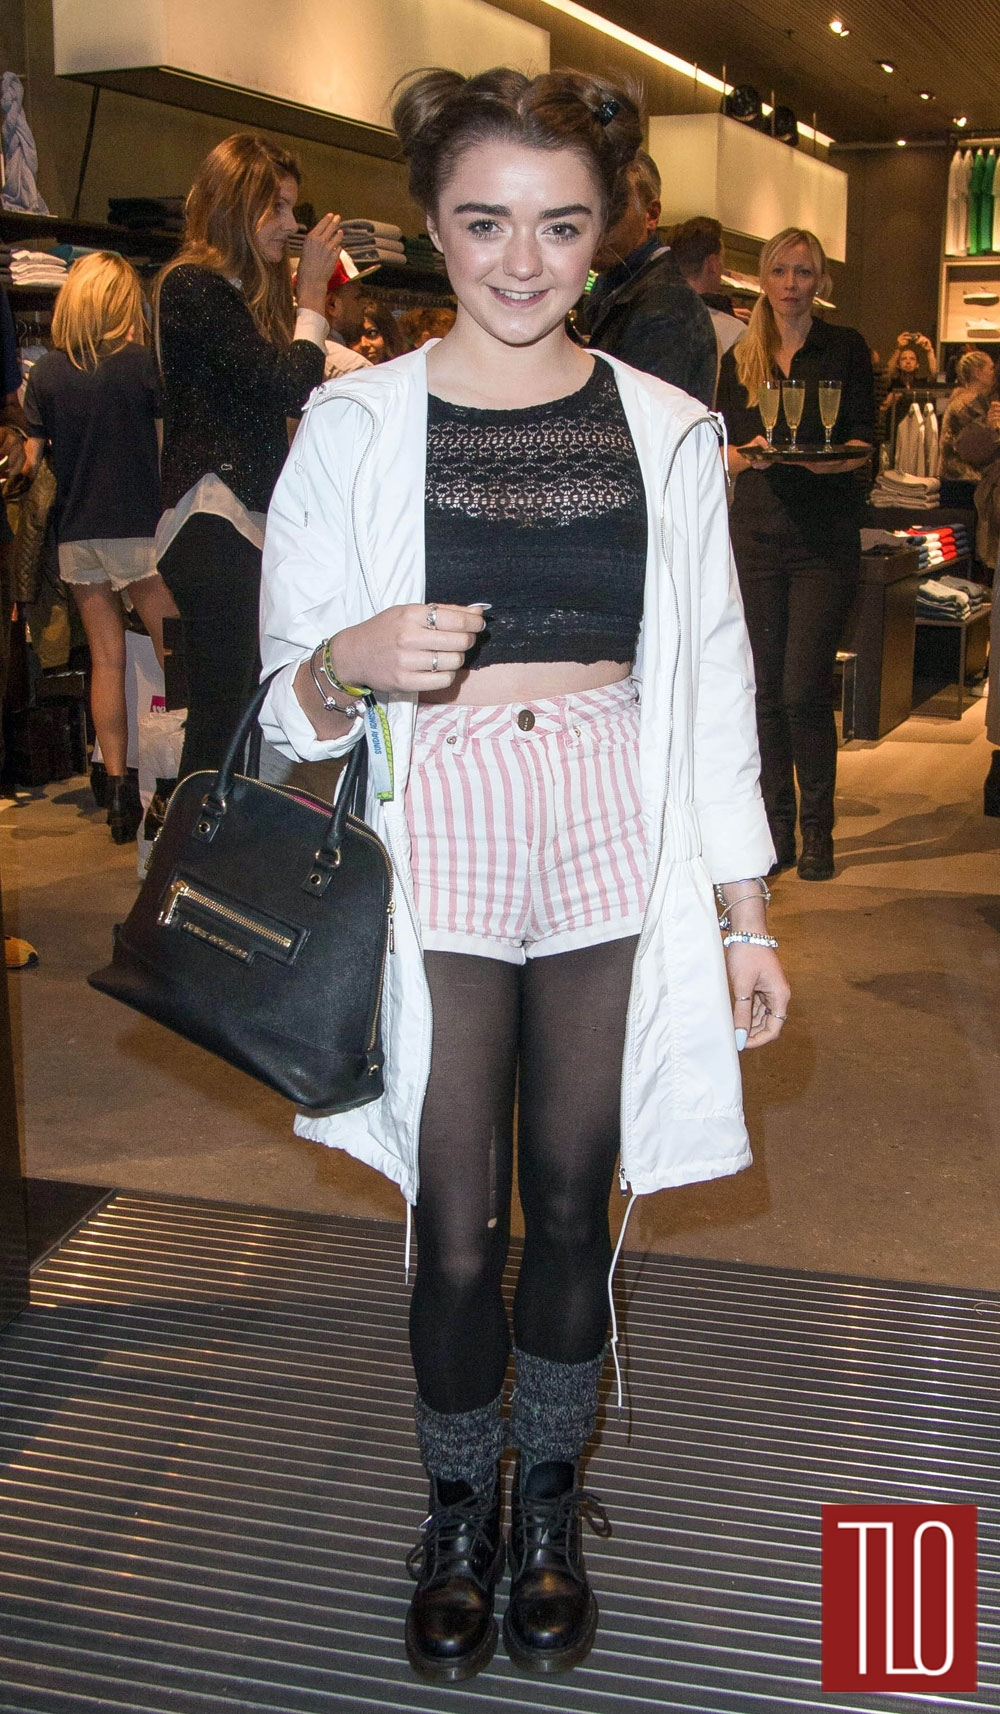 Maisie-Williams-Lacoste-Store-Reopening-London-Tom-Lorenzo-Site-TLO (1)